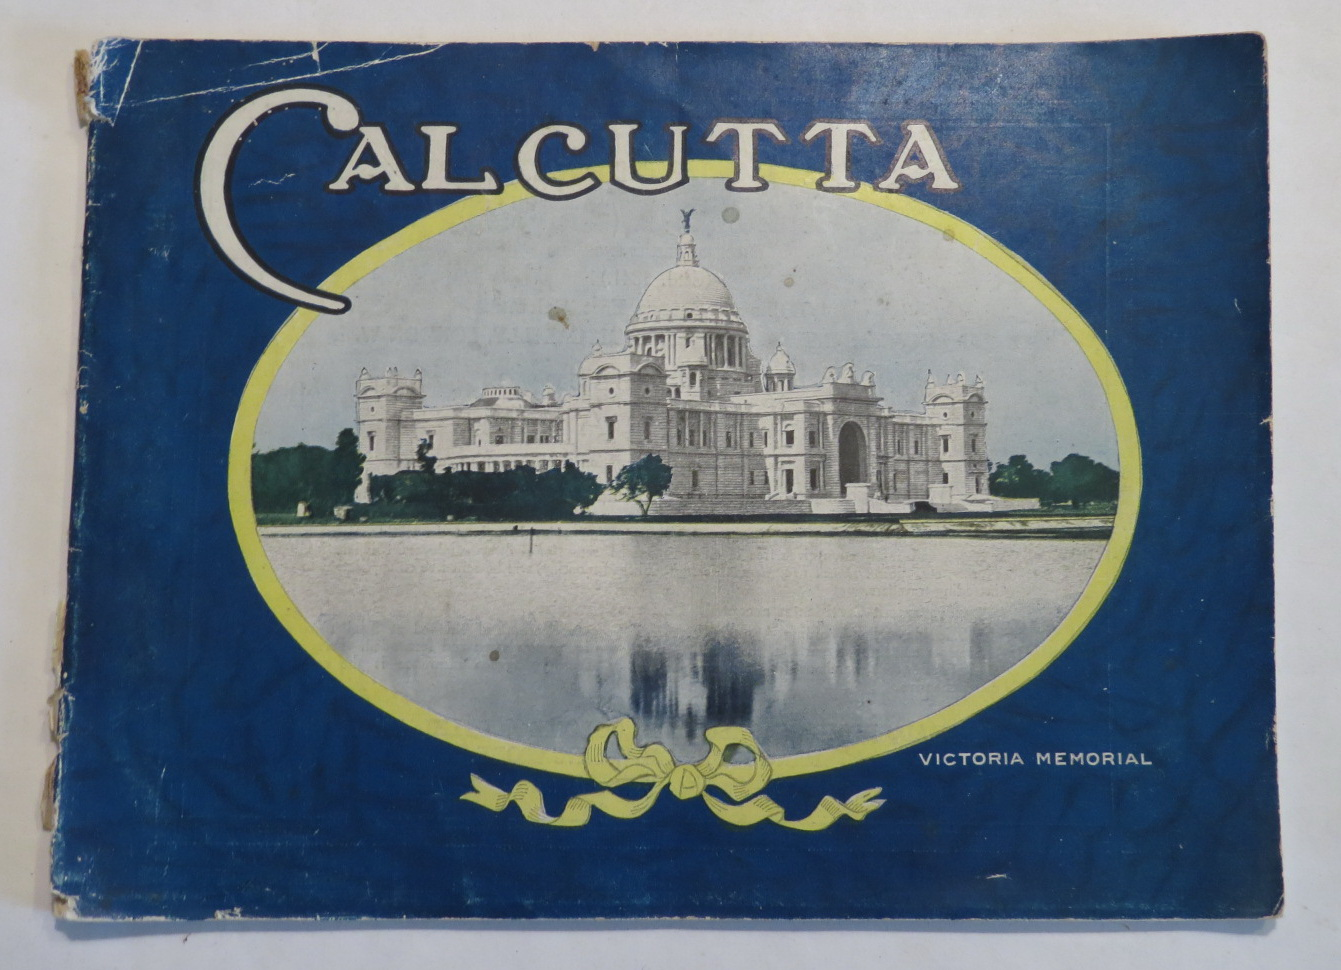 Image for Calcutta & Environs - A Brief Historical, Pictorial & Informative Survey of Places of Interest to the Visitor